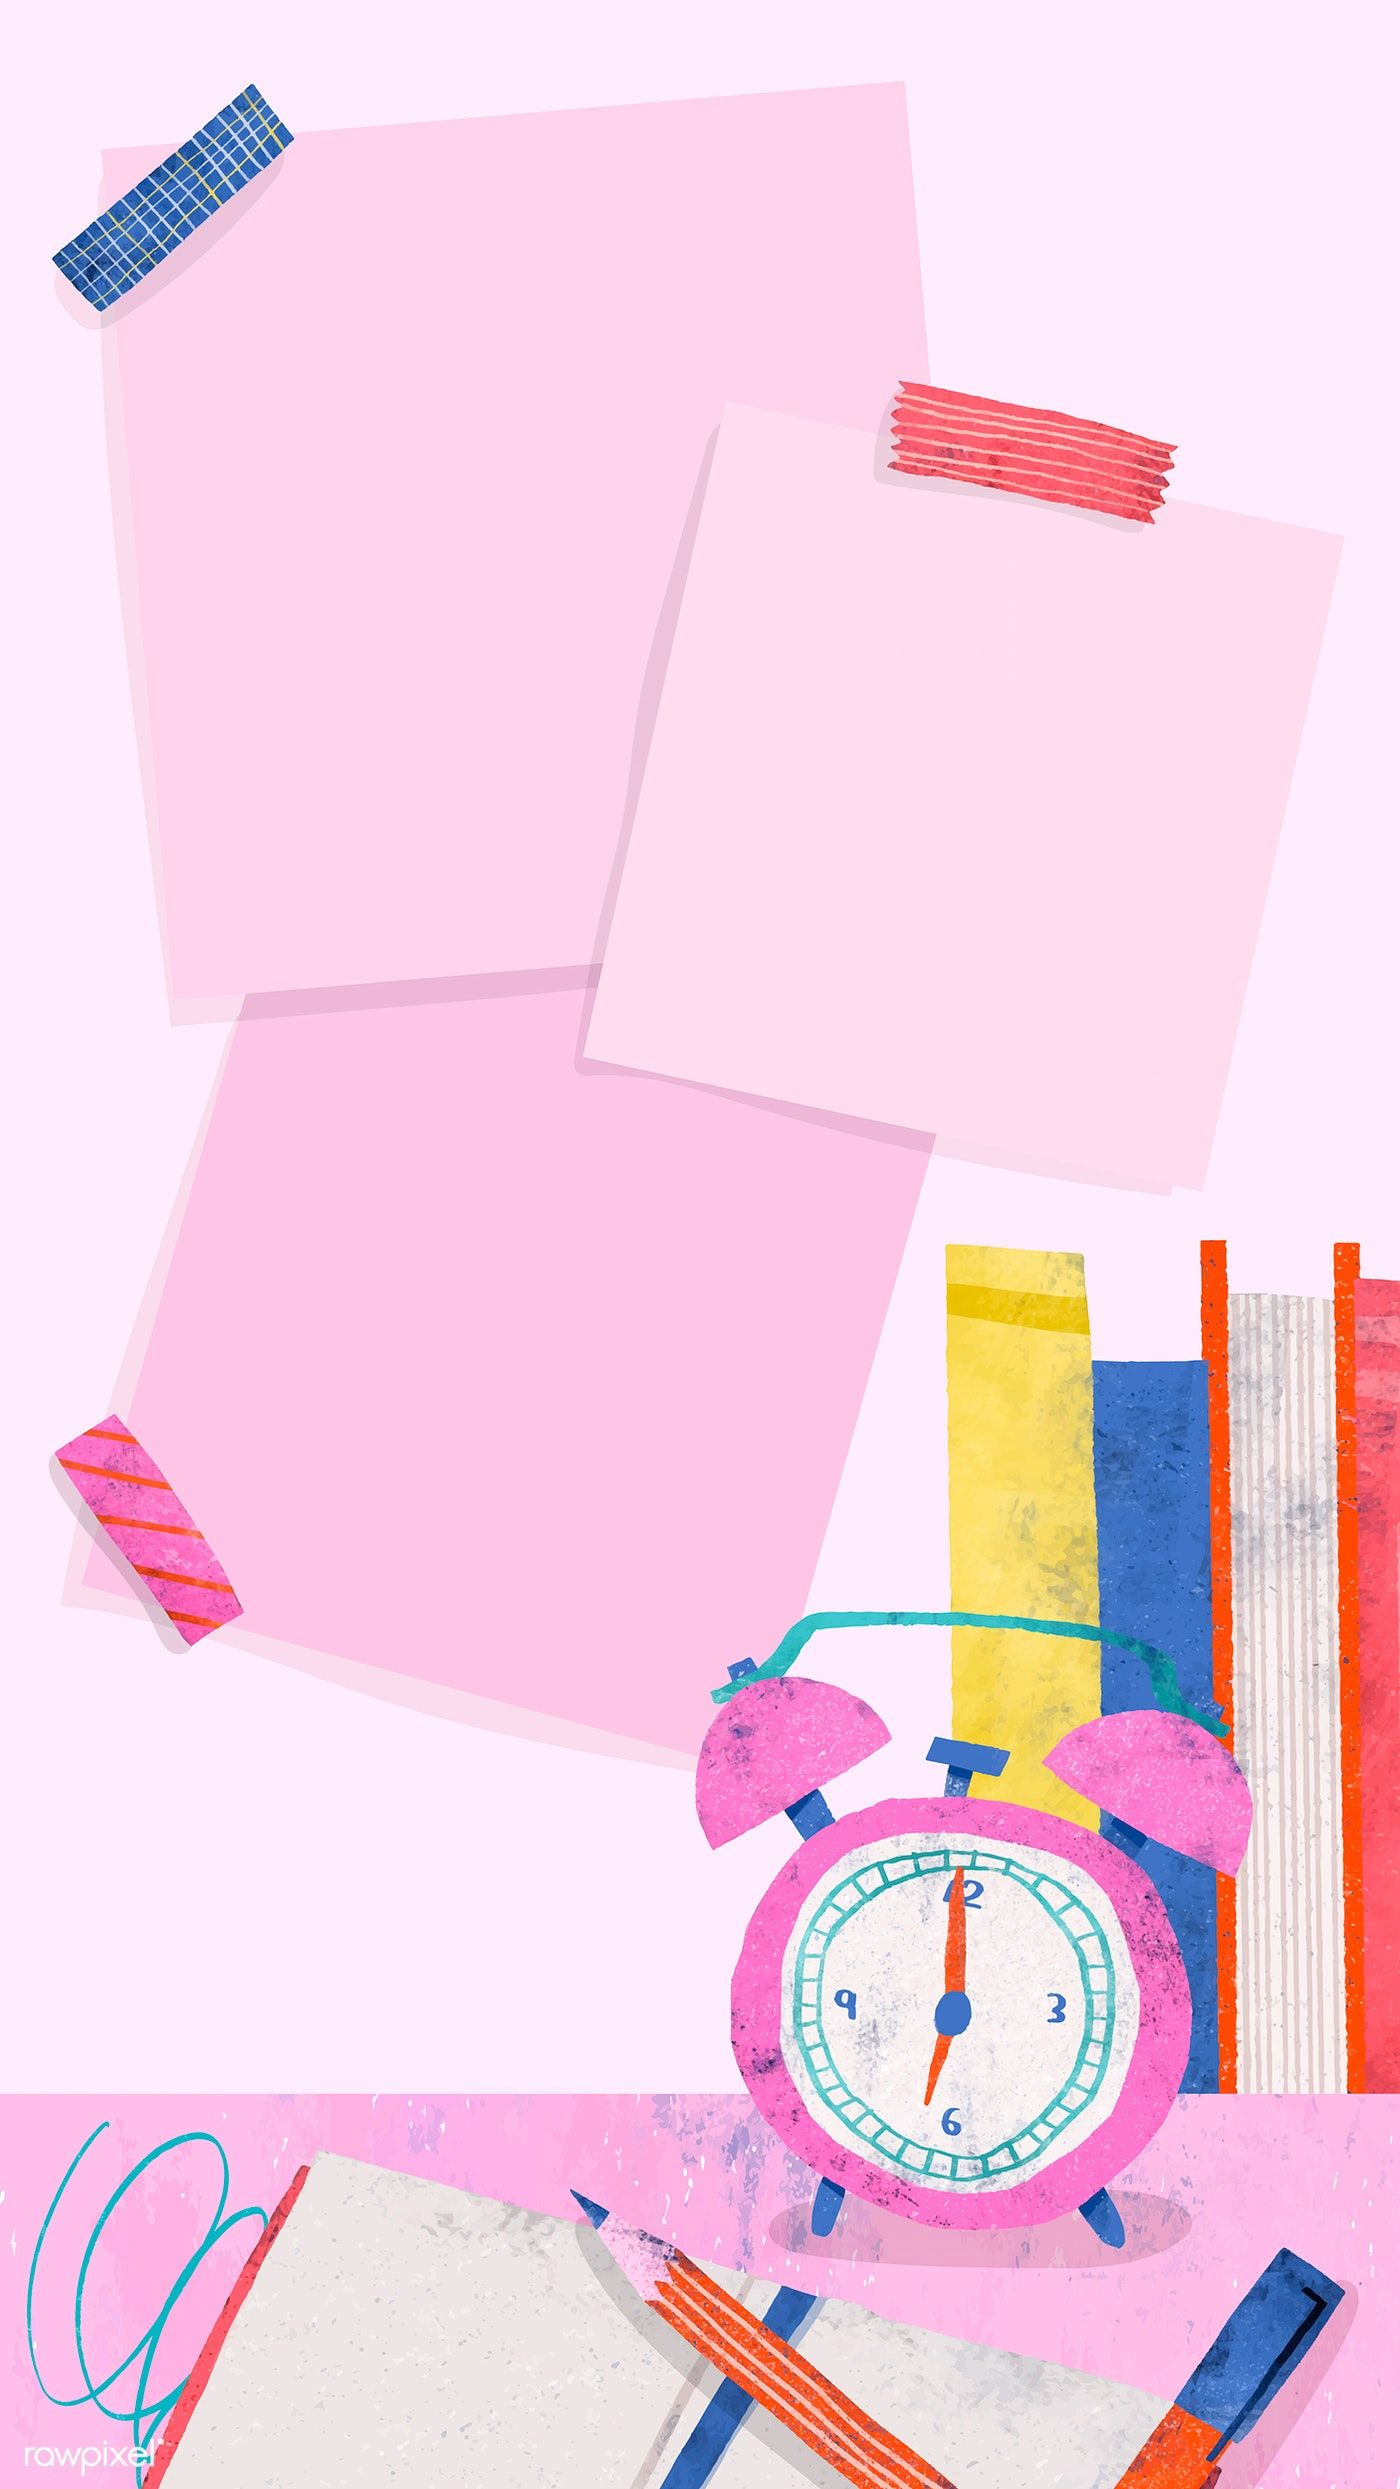 Download Premium Vector Of Blank Pink Back To School Mobile Phone Blank Pink Powerpoint Background Design Phone Wallpaper